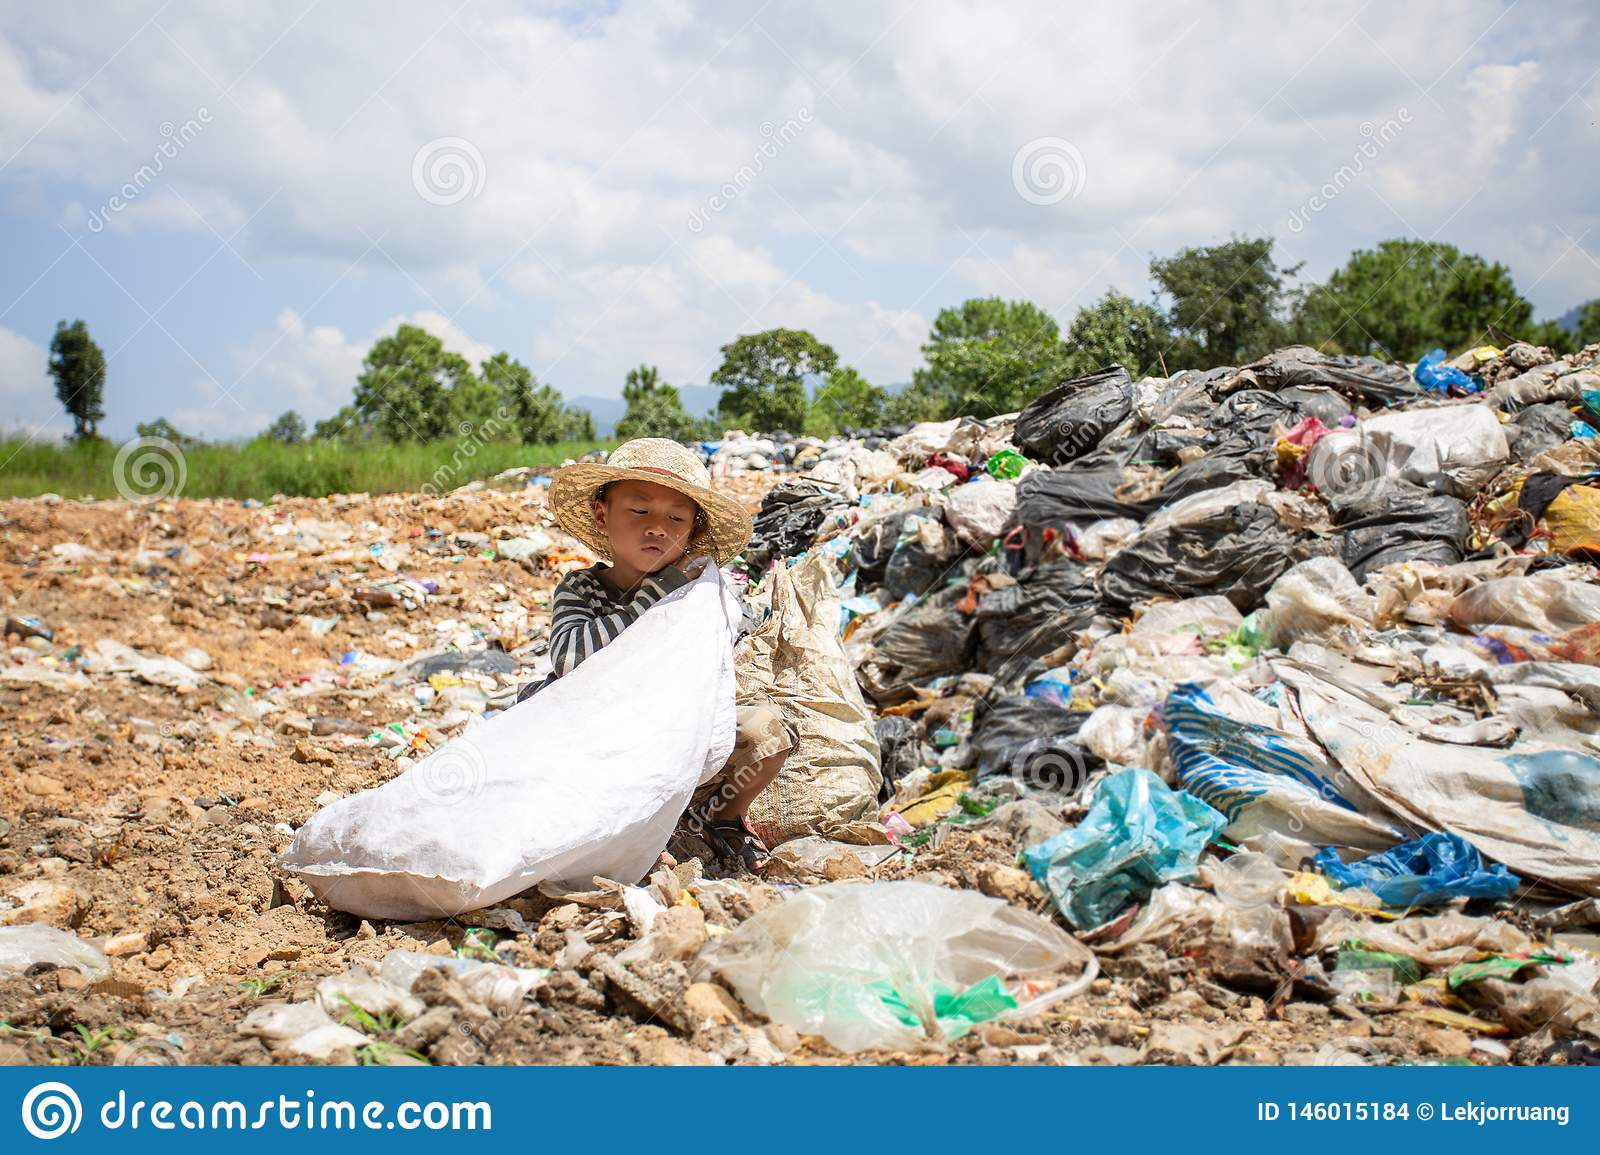 Poor children collect and sort waste for sale, concepts of poverty and the environment